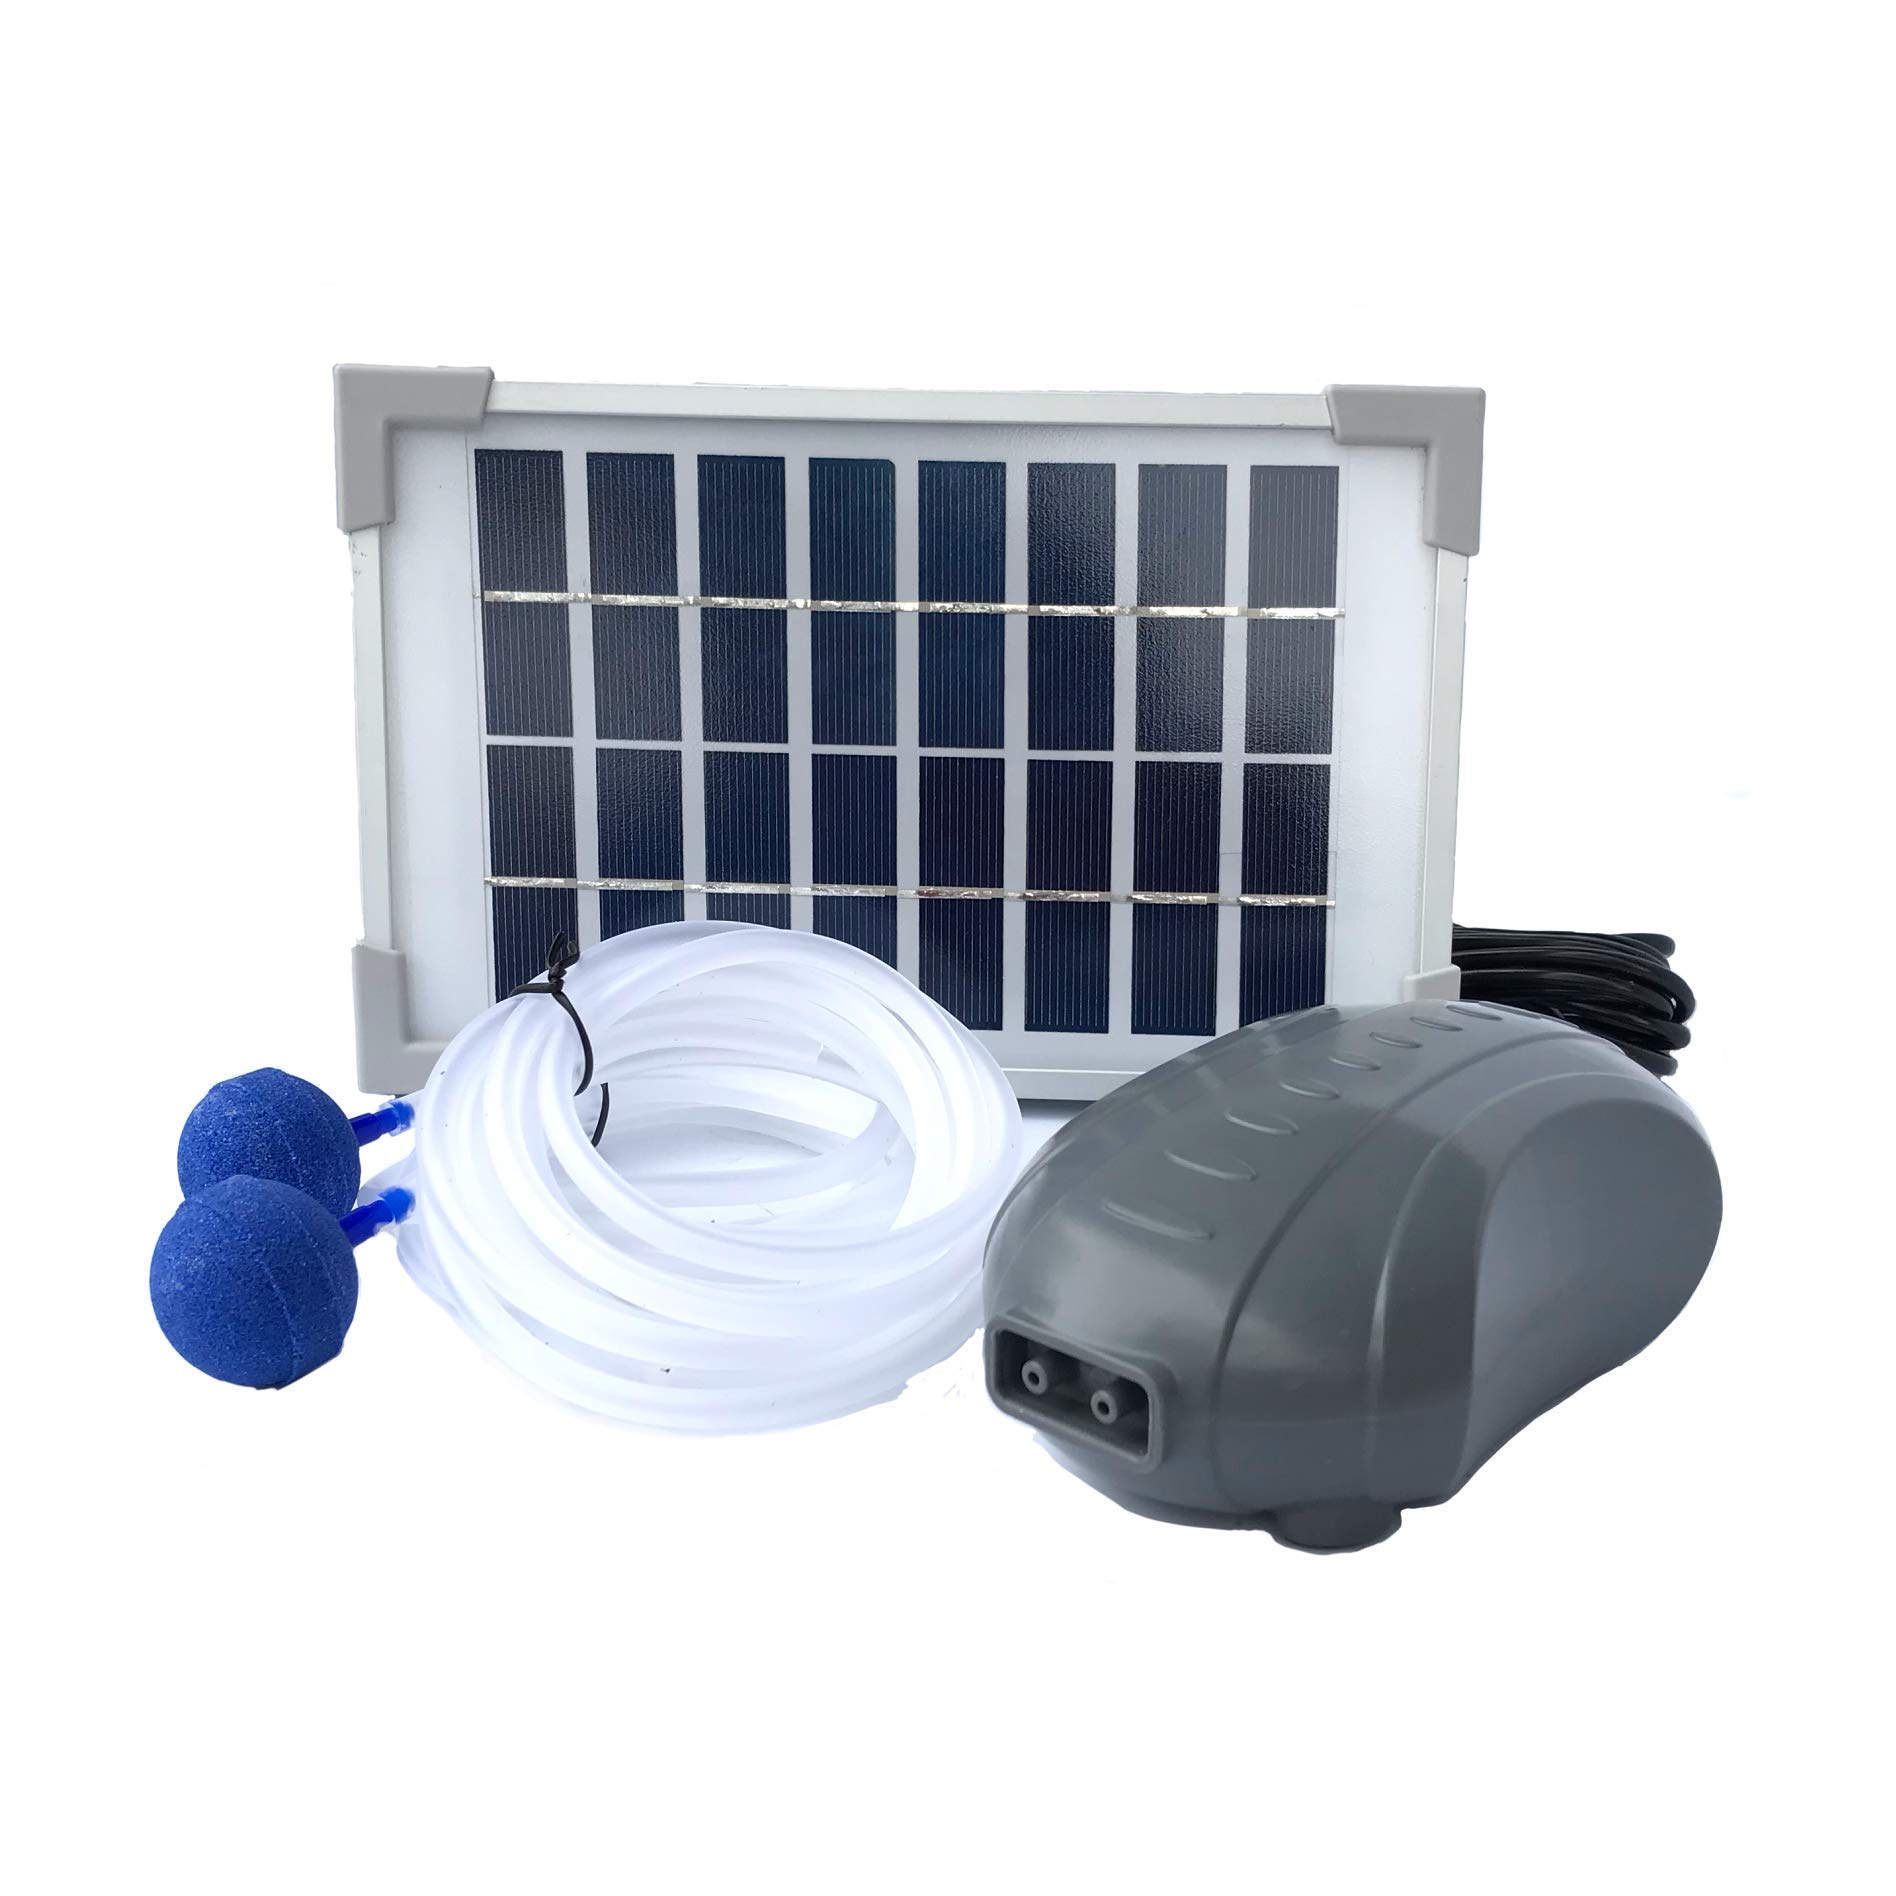 AEO Solar Powered Air Pump Kit, Two Airing Stones, 3LPM Air Pump & 2.5W Solar Panel for Fish Pond, Aquaculture, Hydroponics, Bubbleponics by AEO